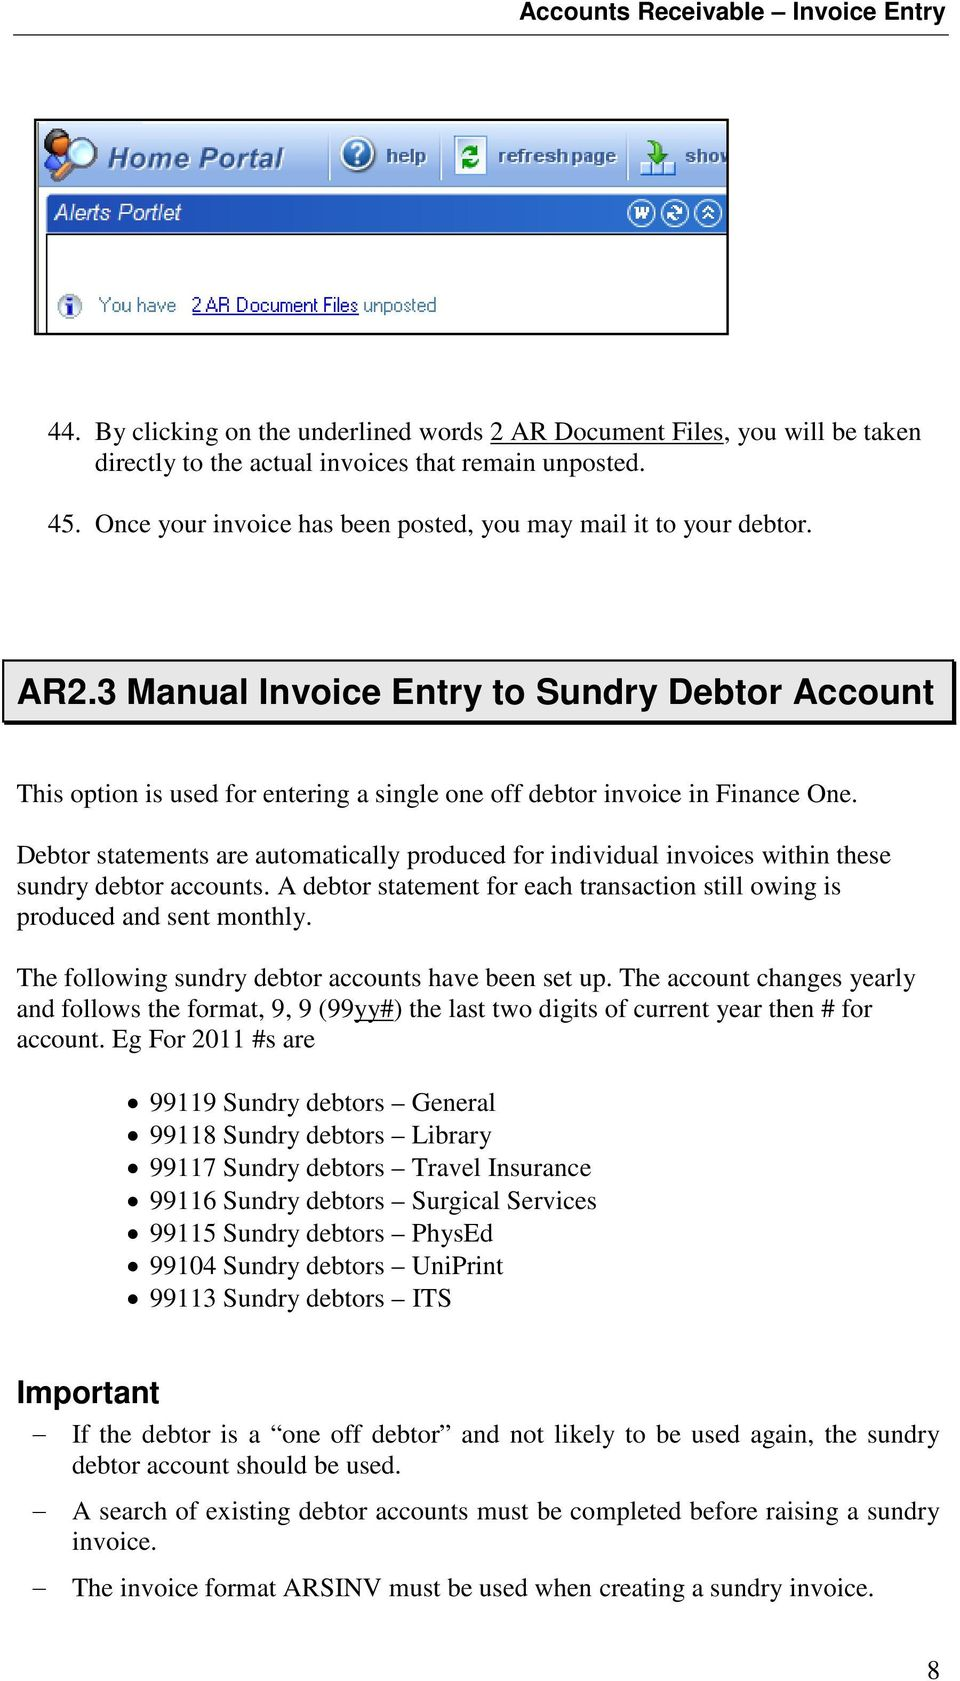 Debtor statements are automatically produced for individual invoices within these sundry debtor accounts. A debtor statement for each transaction still owing is produced and sent monthly.